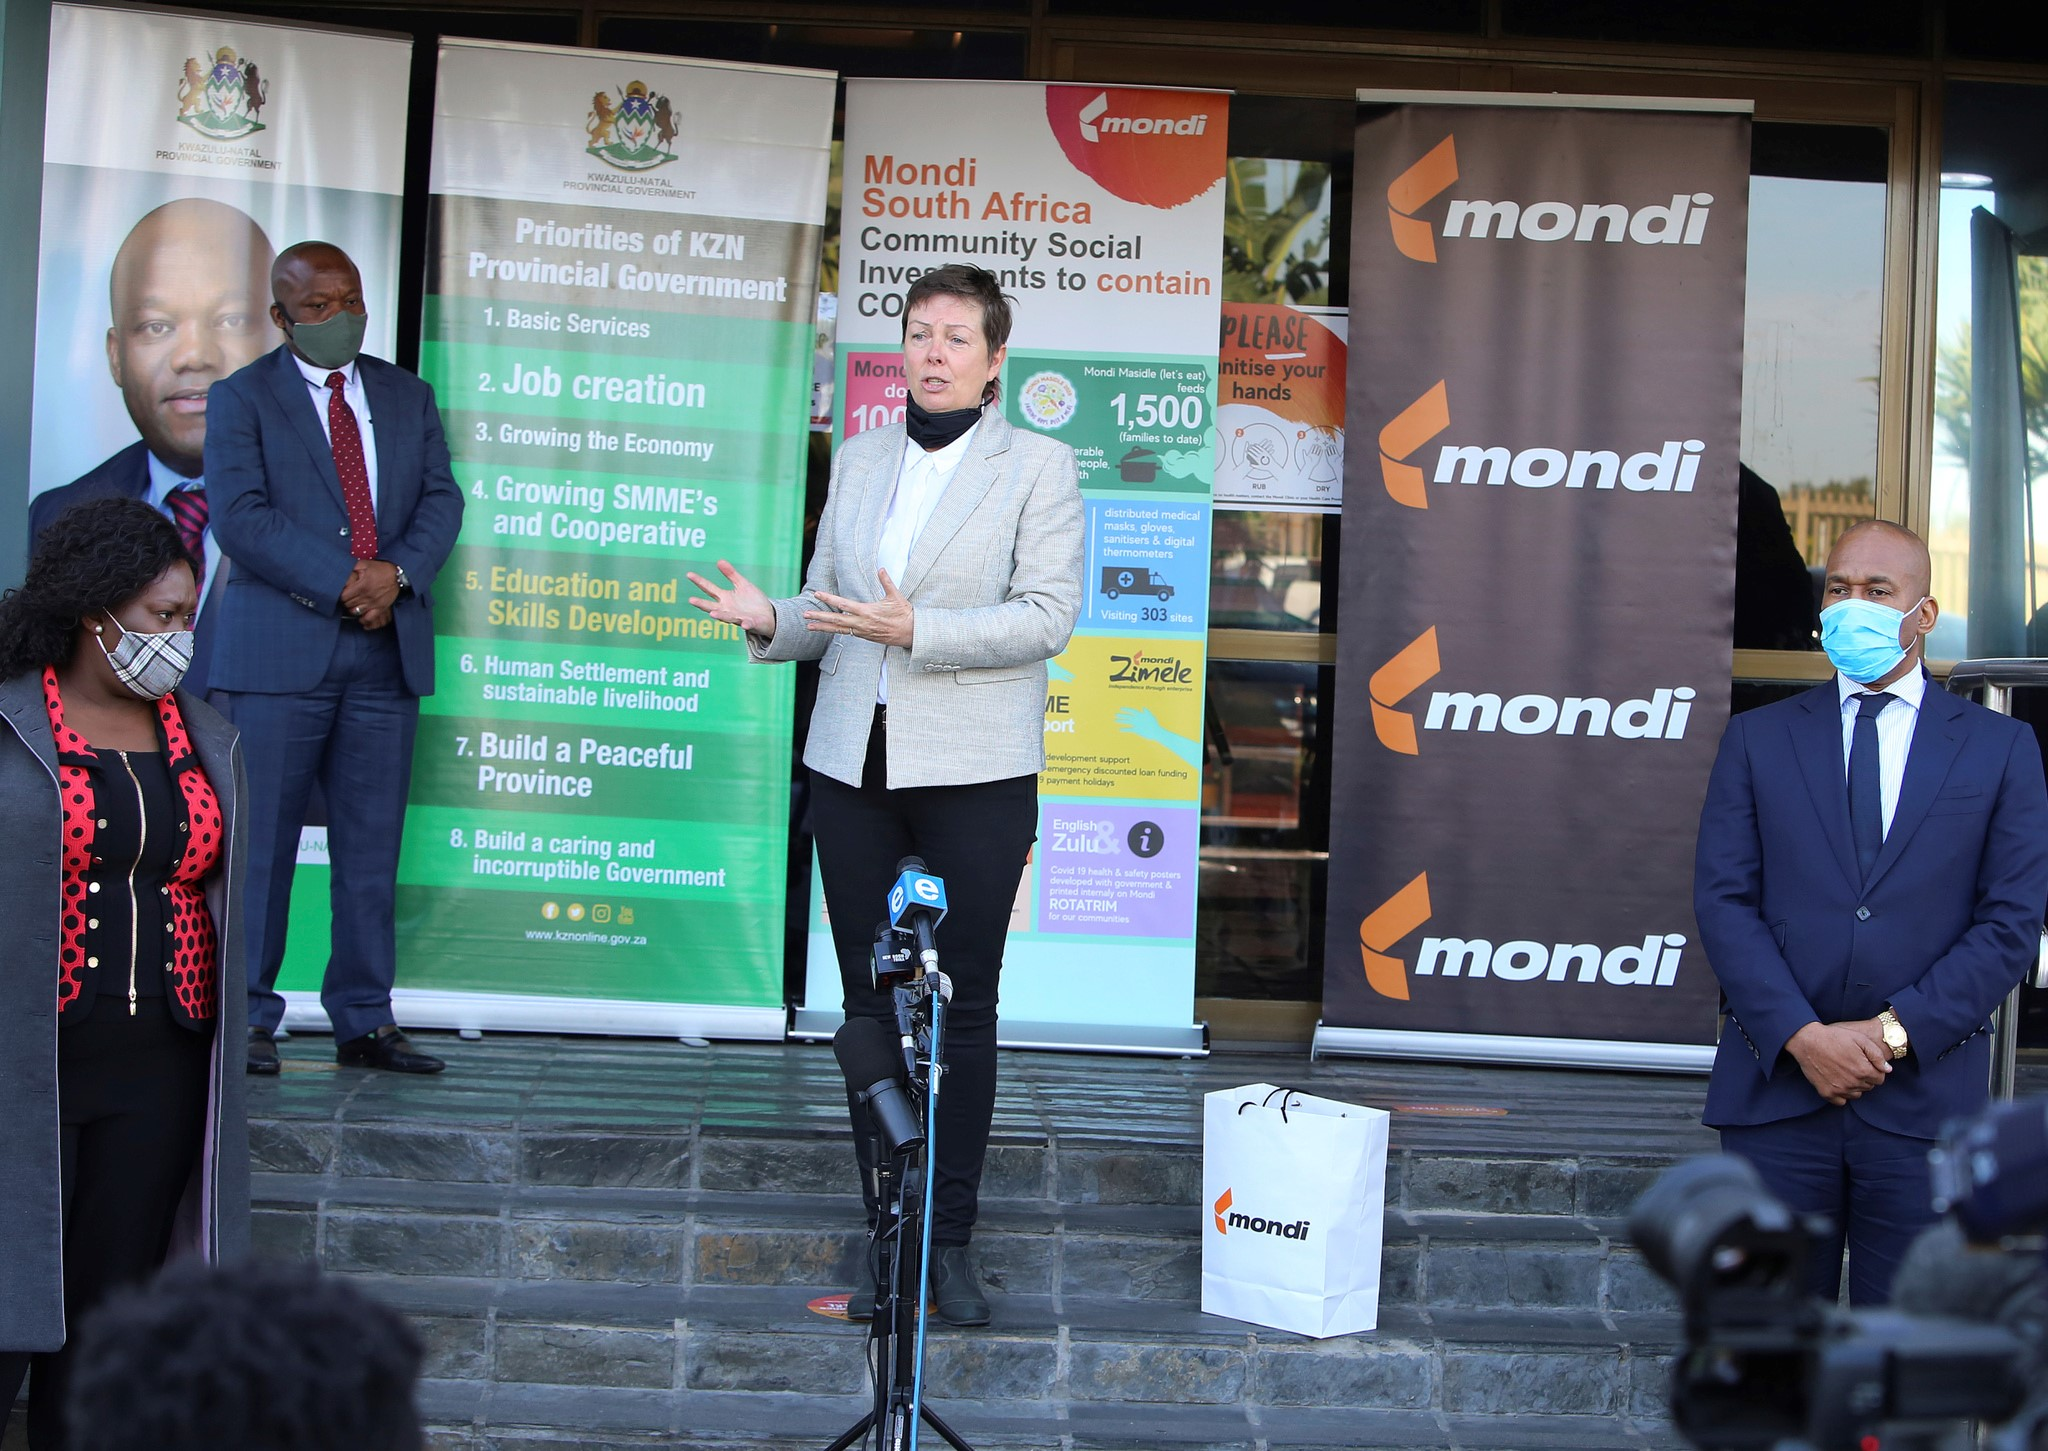 Mondi donated 100 000 medical grade masks in June to protect frontline healthcare workers in KwaZulu-Natal